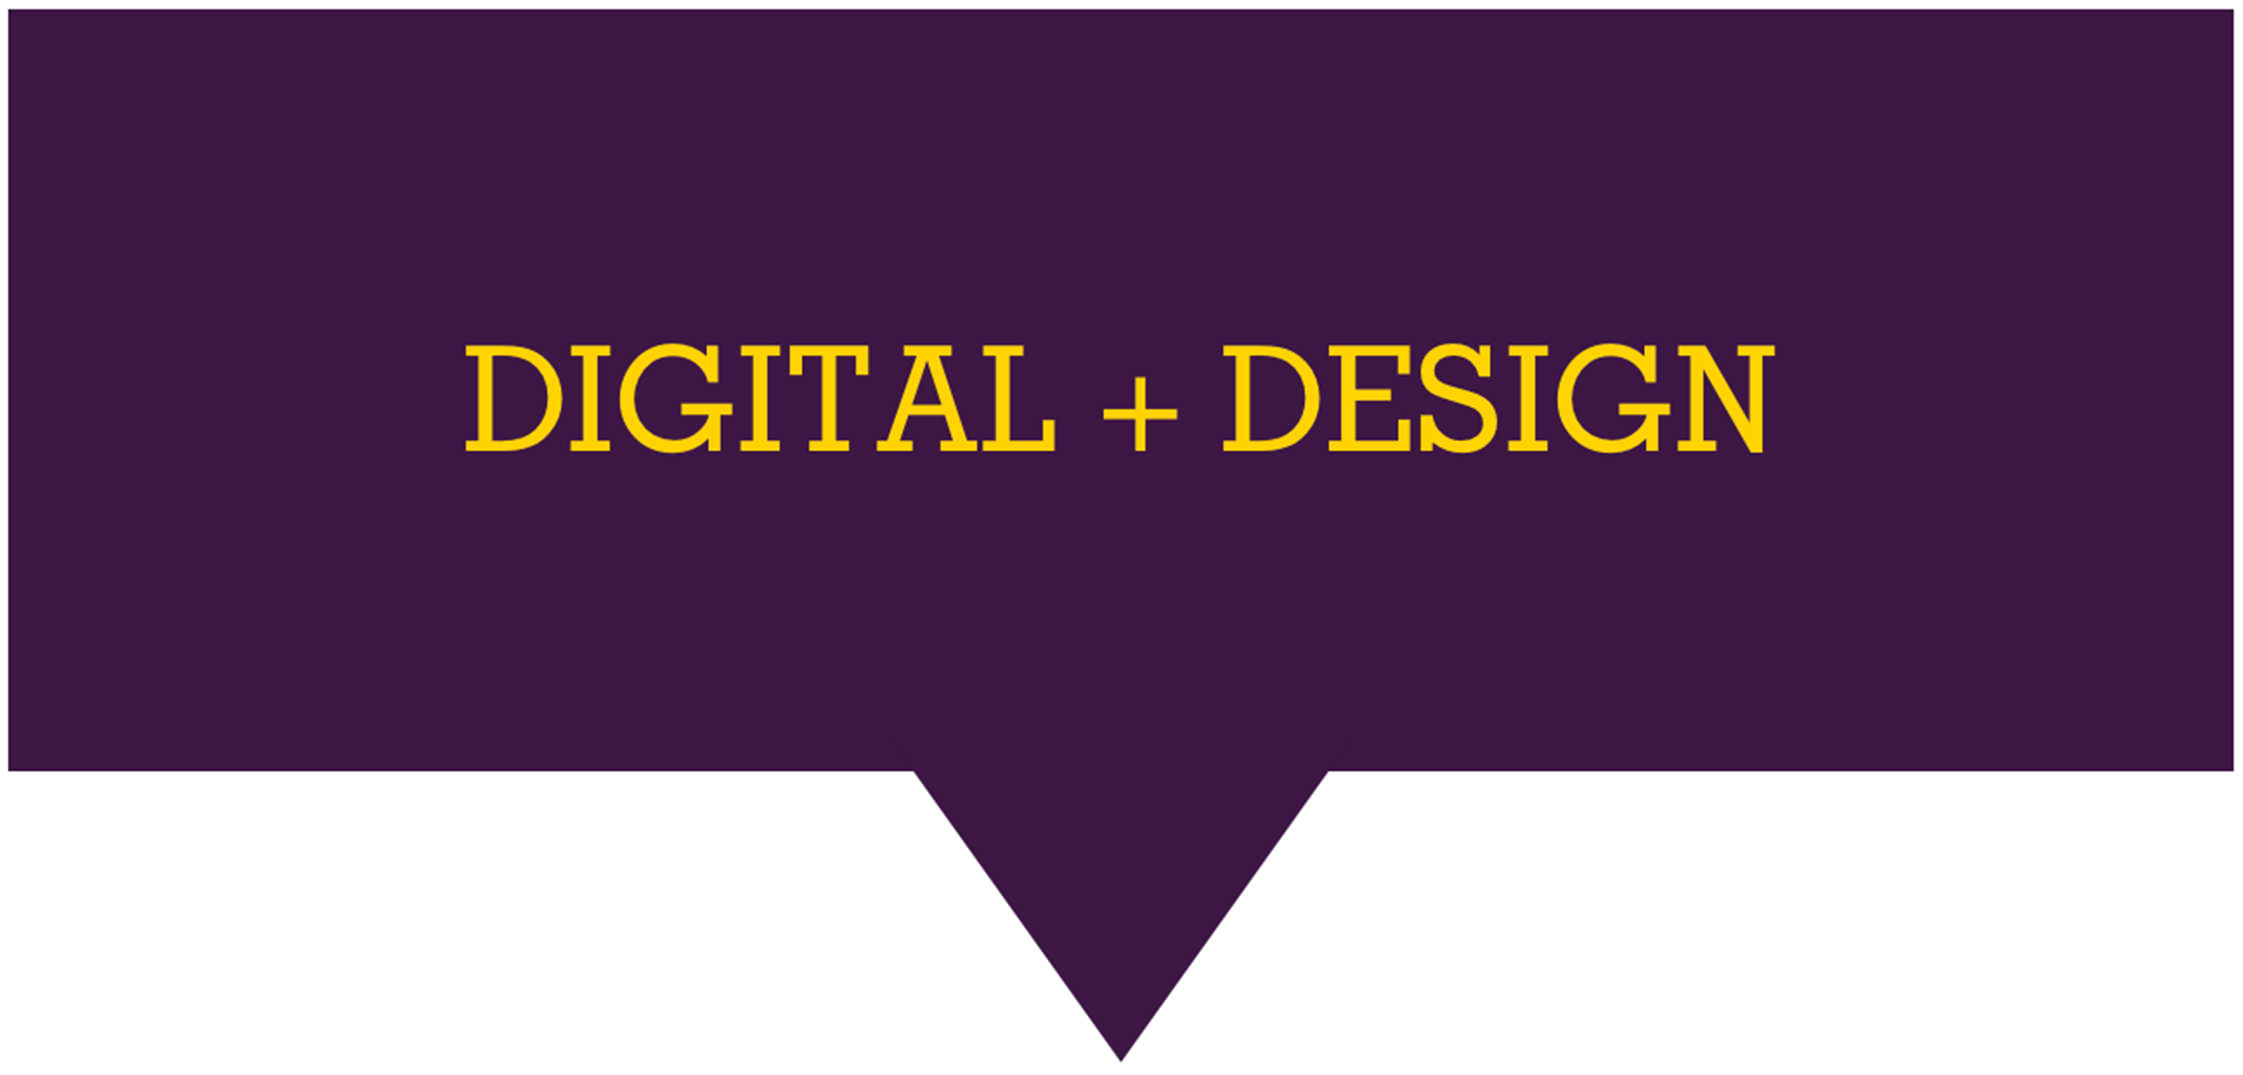 DigitalDesignTitle.jpg